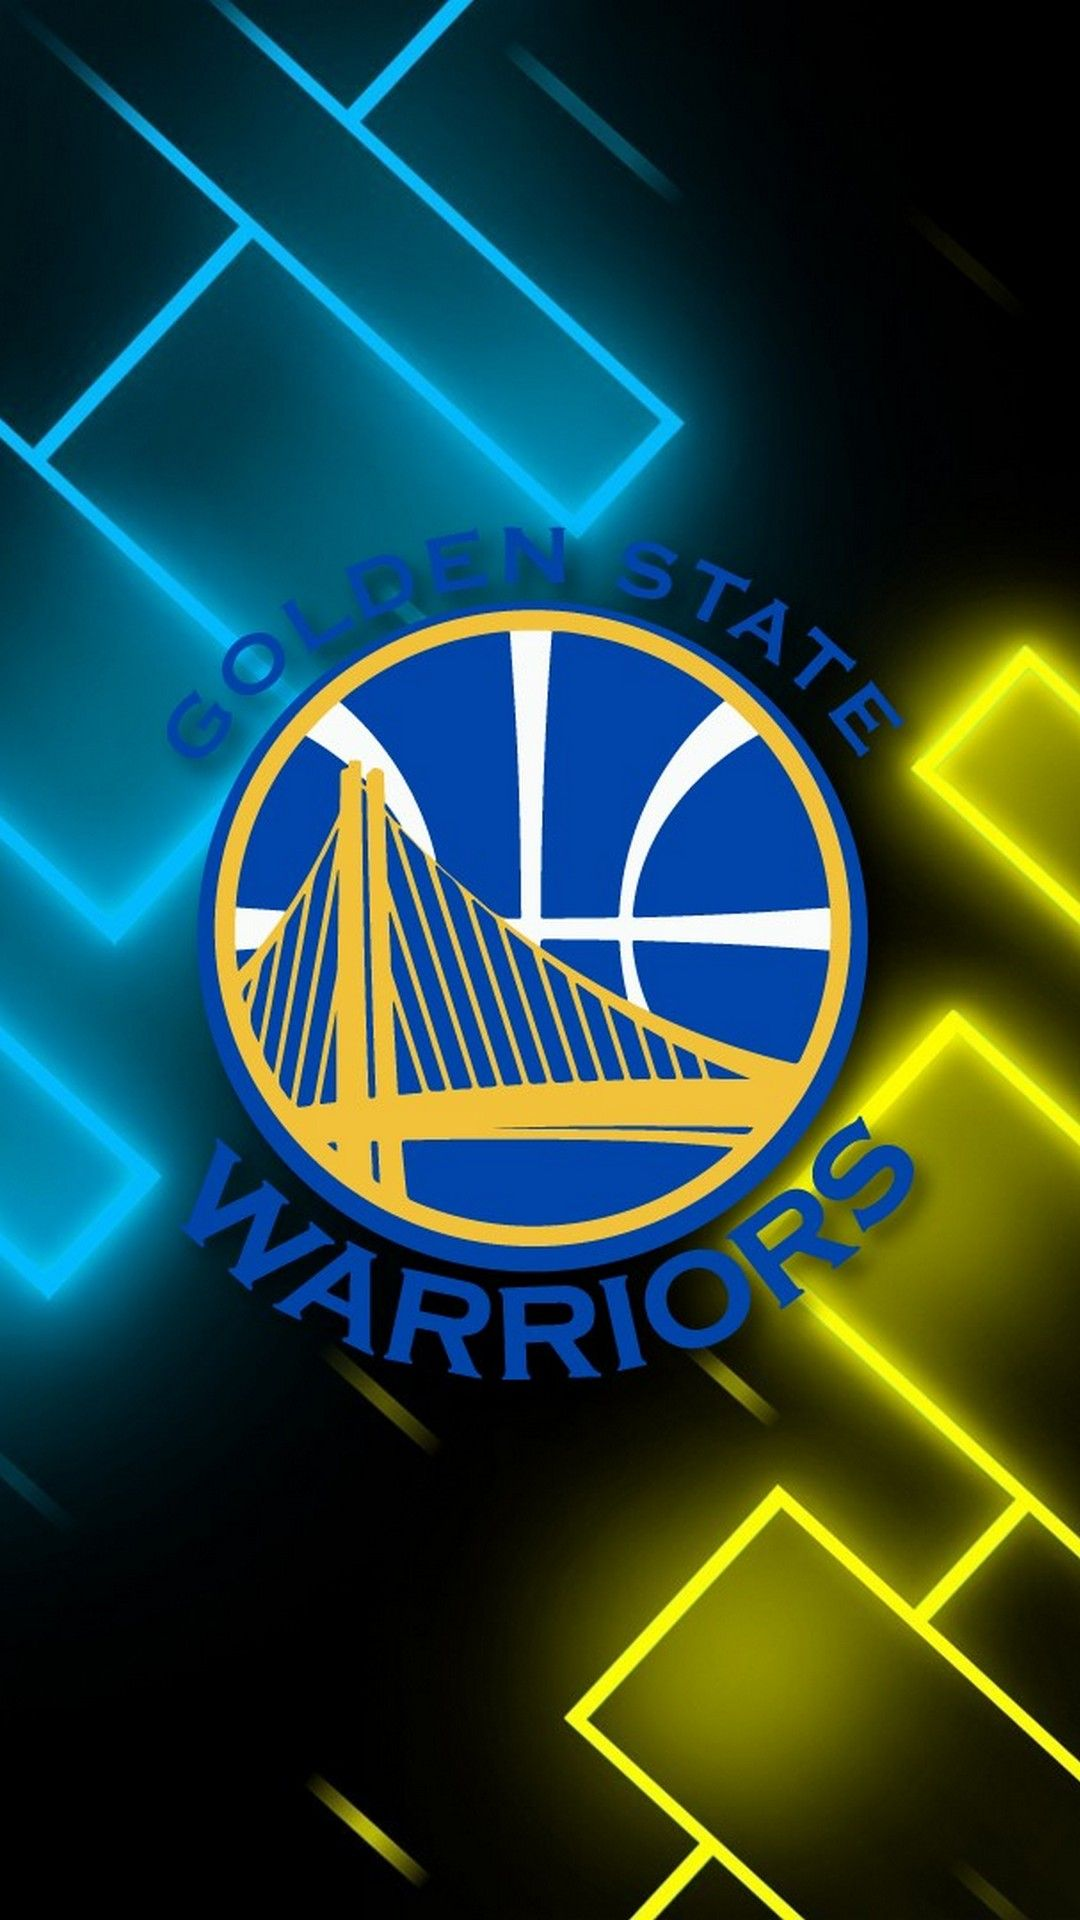 Golden State Warriors Iphone 6 Wallpaper Best Wallpaper Hd Golden State Warriors Wallpaper Warriors Wallpaper Golden State Warriors